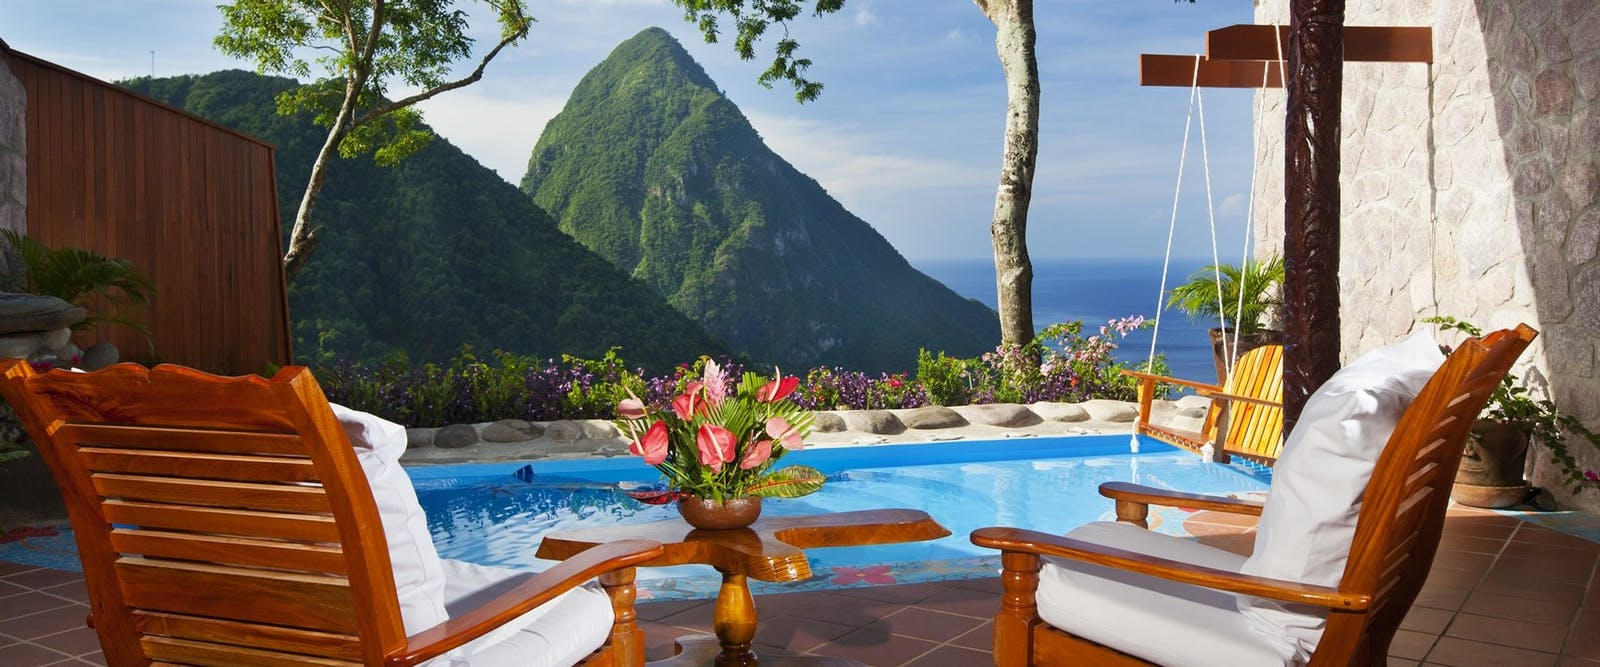 Pool Area in Suite at Ladera, St Lucia